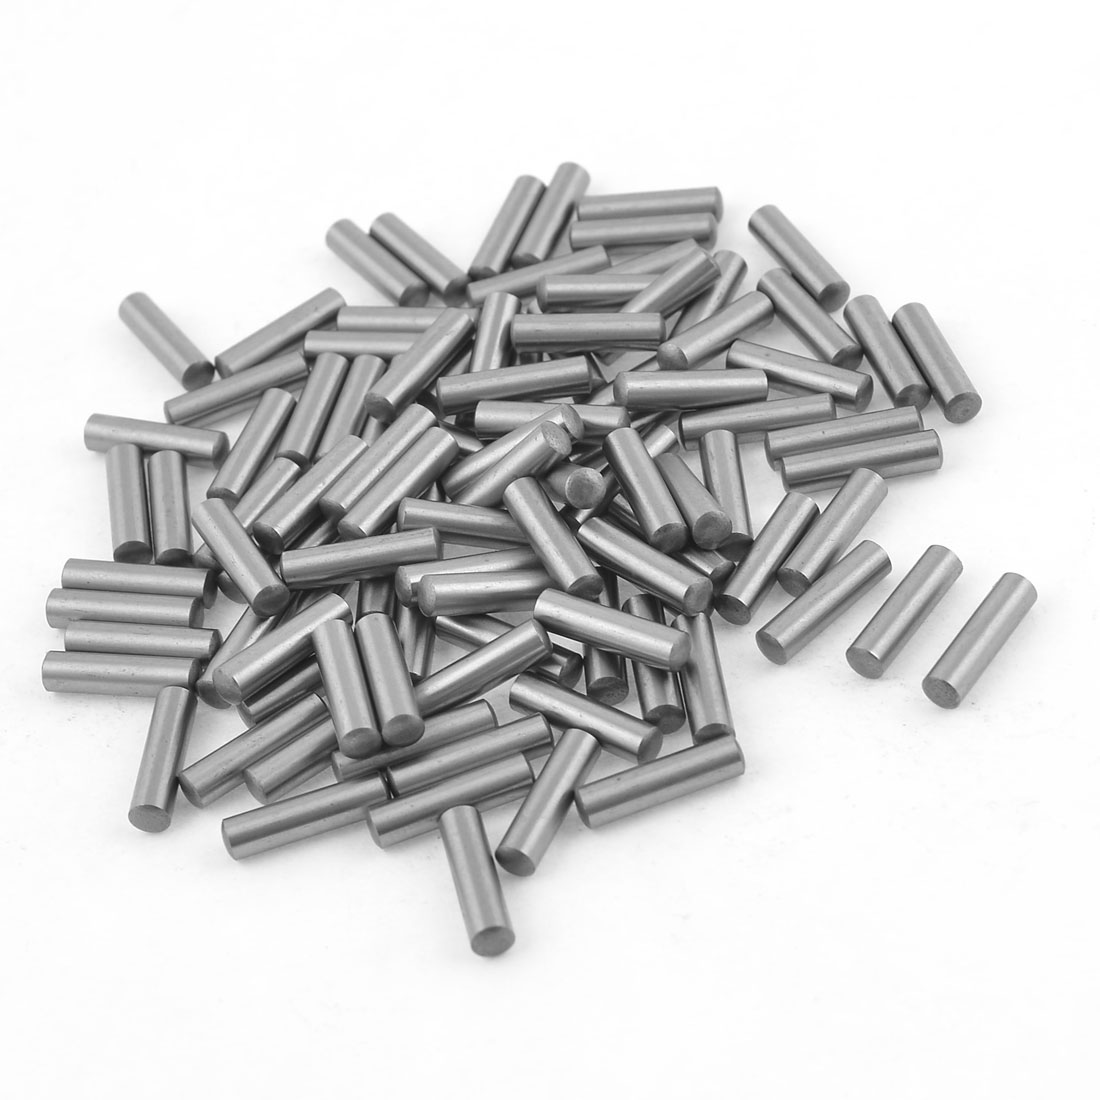 100 Pcs 3.1mm x 15.8mm Parallel Dowel Pins Fasten Elements